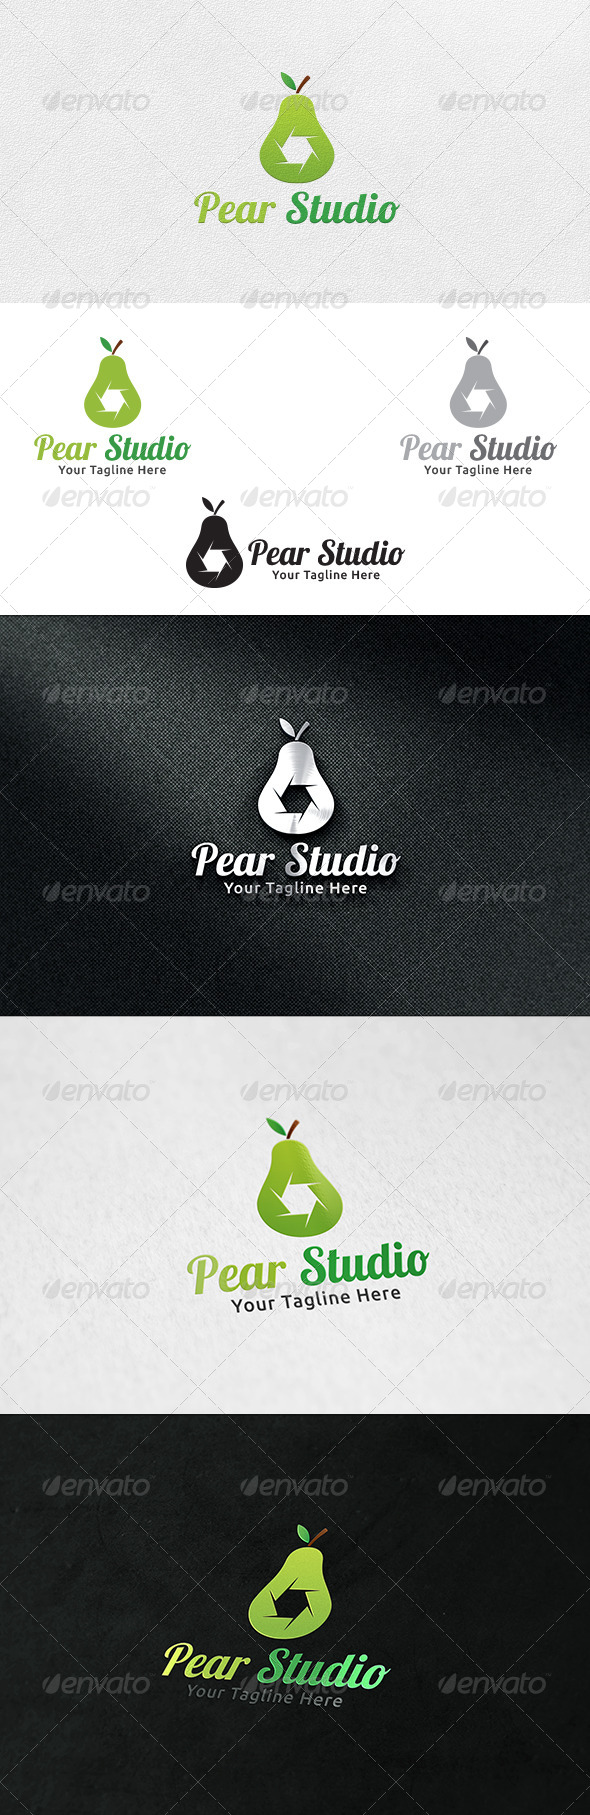 GraphicRiver Pear Studio Logo Template 6913195